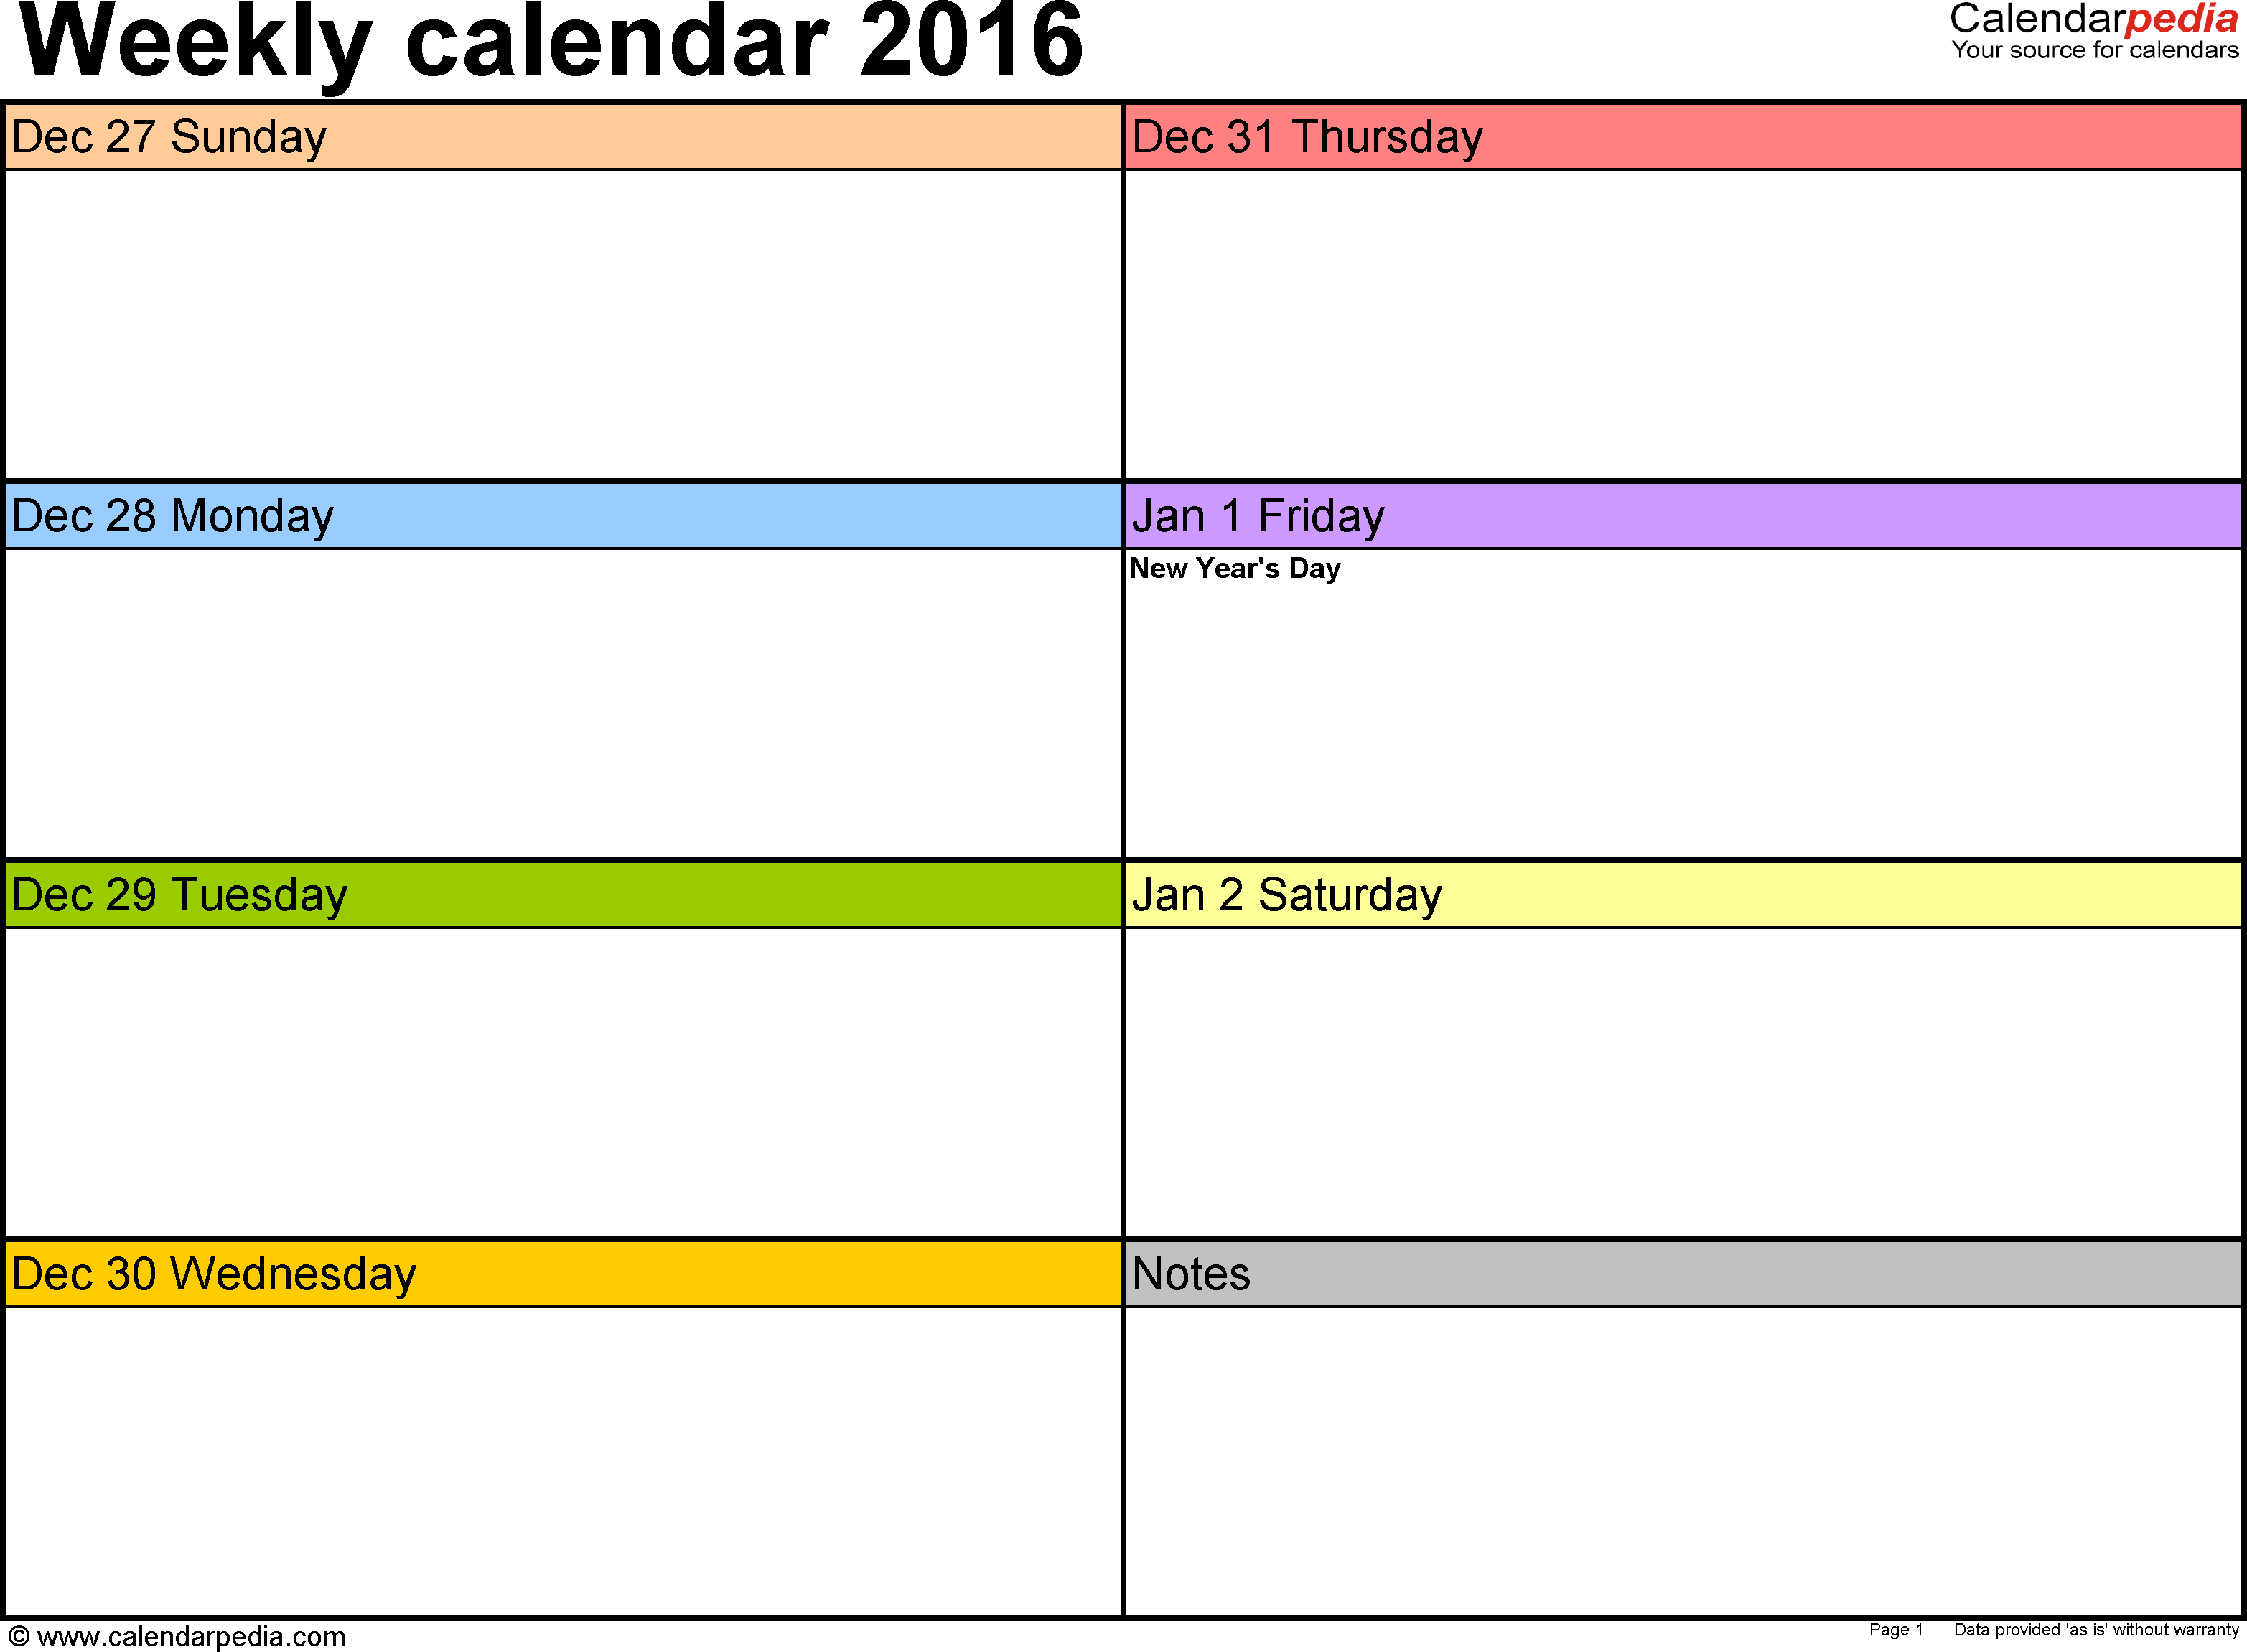 Weekly calendar 2016: template for Excel version 6, landscape, 53 pages, in color, week divided into 2 columns (7 days and one field for notes)